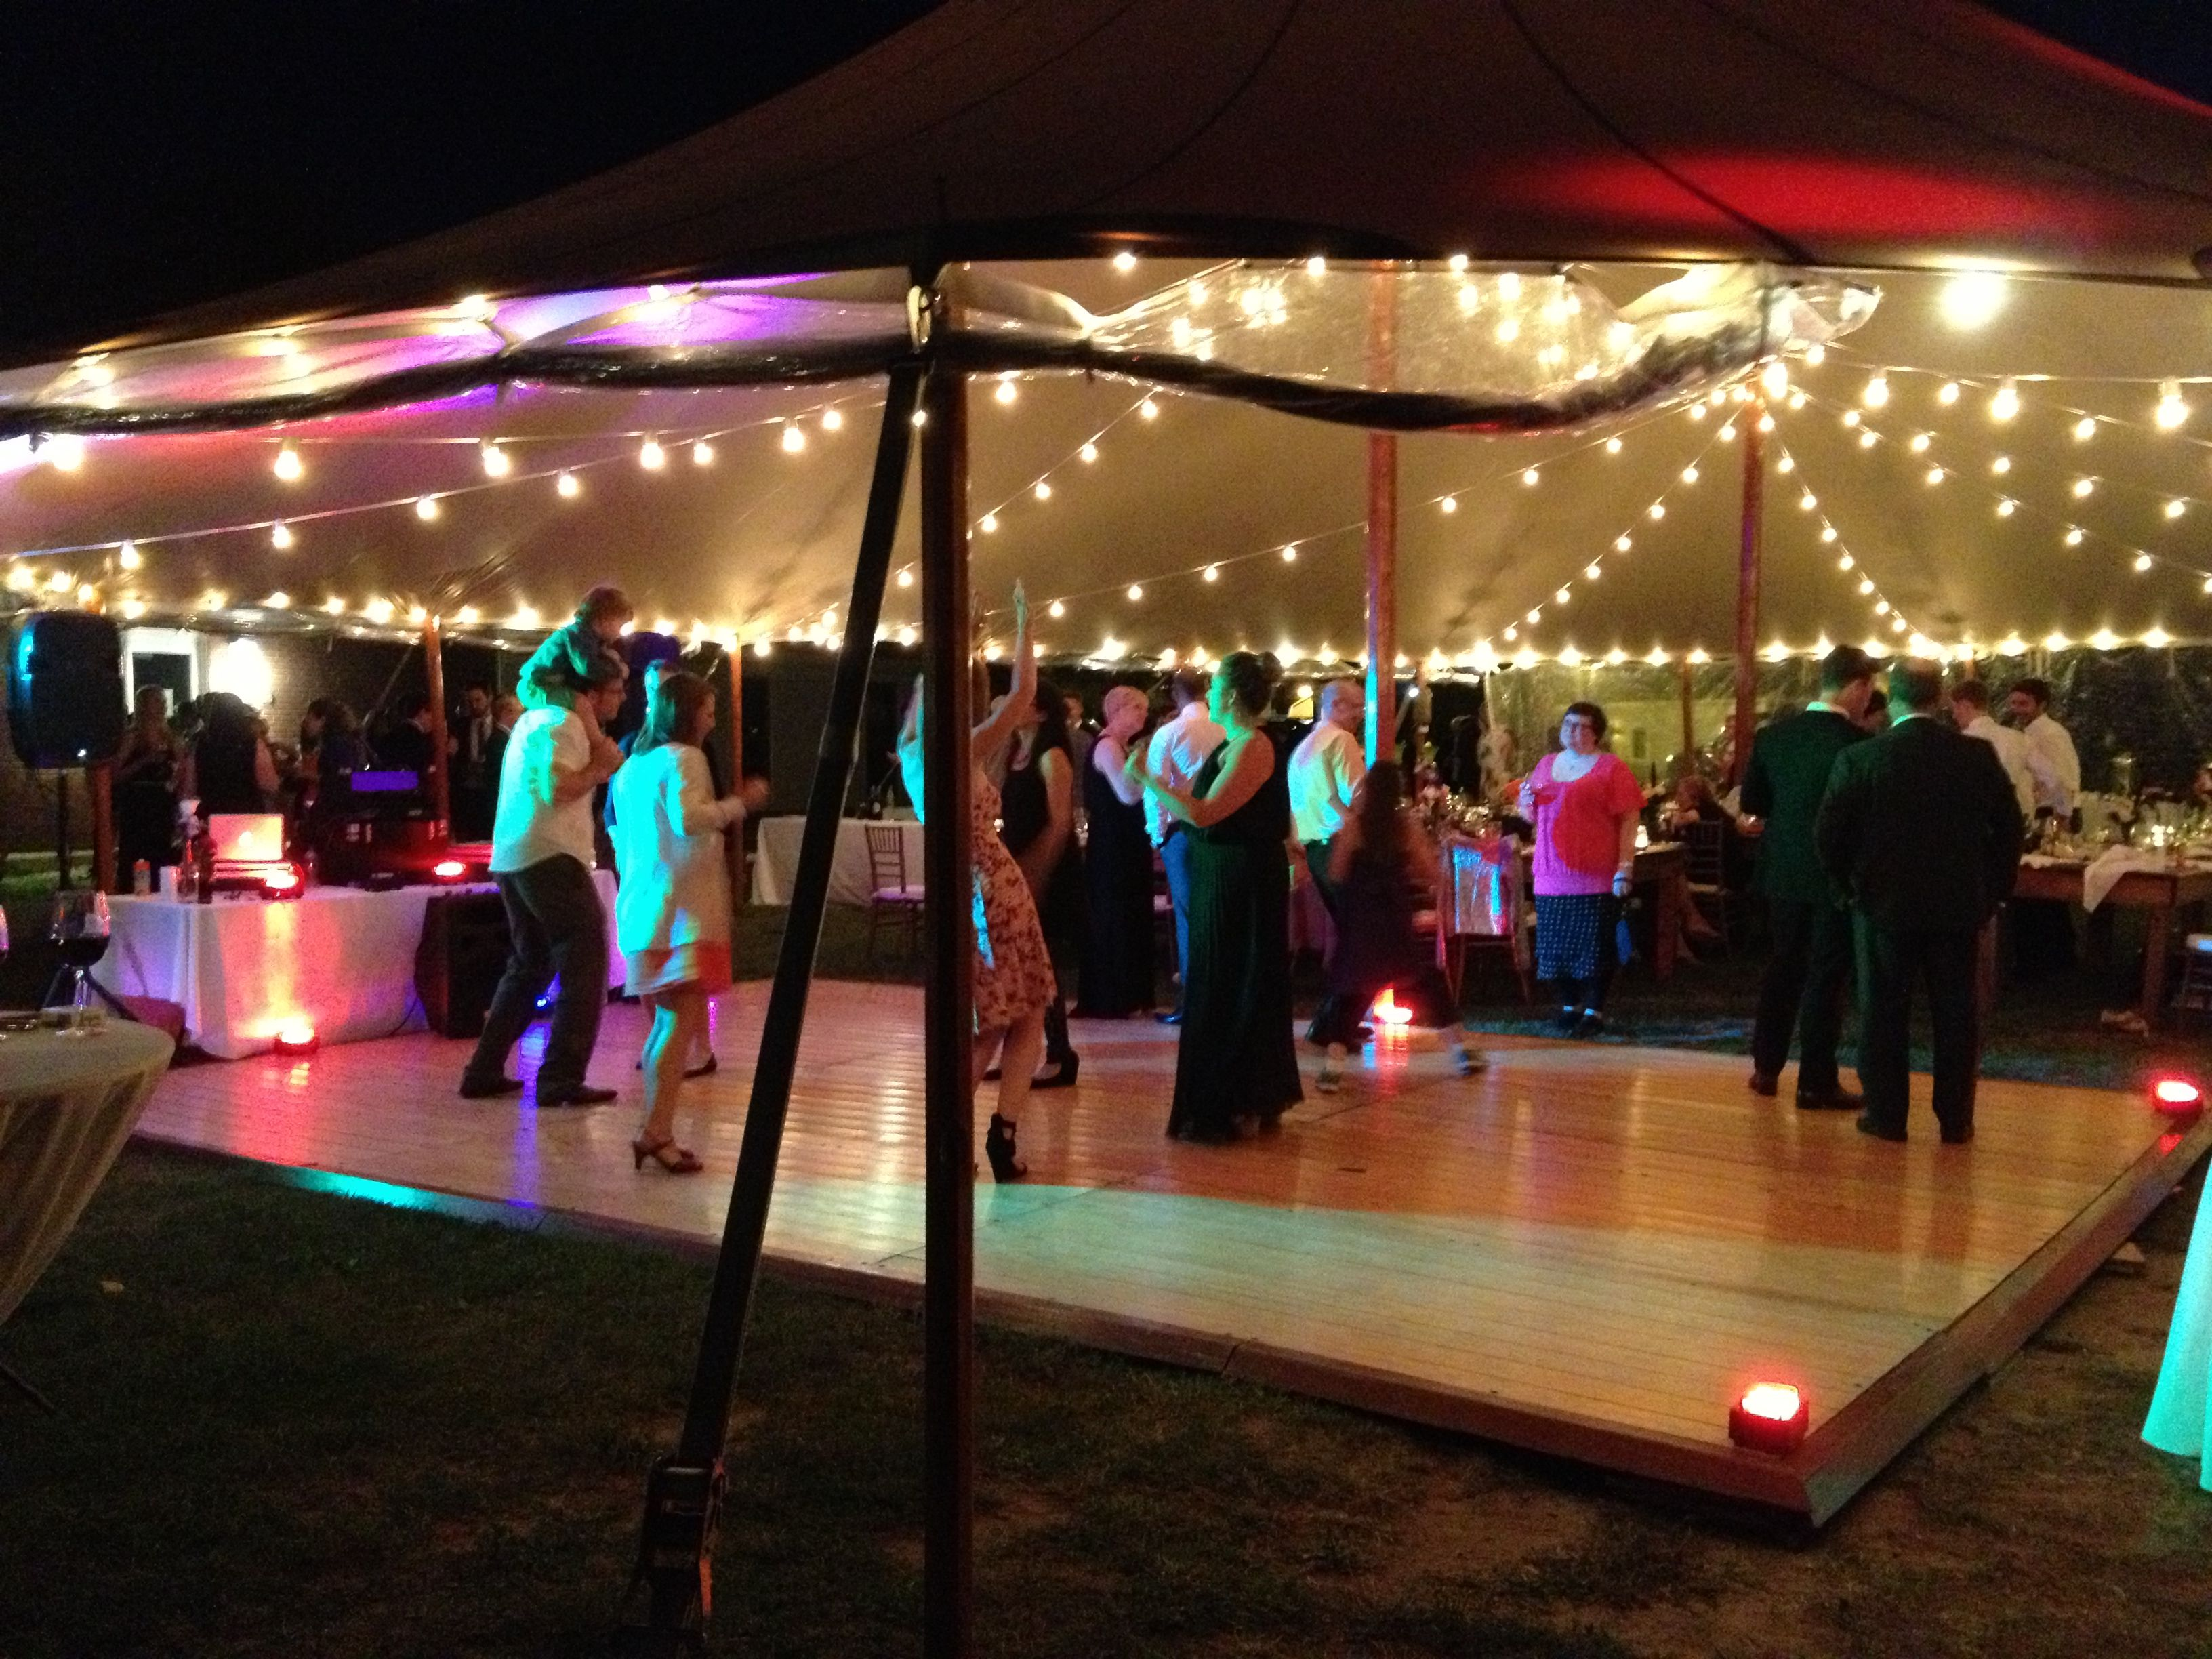 Southern Maine Community College Wedding On 08 24 13 With Sperry Tents SMCC